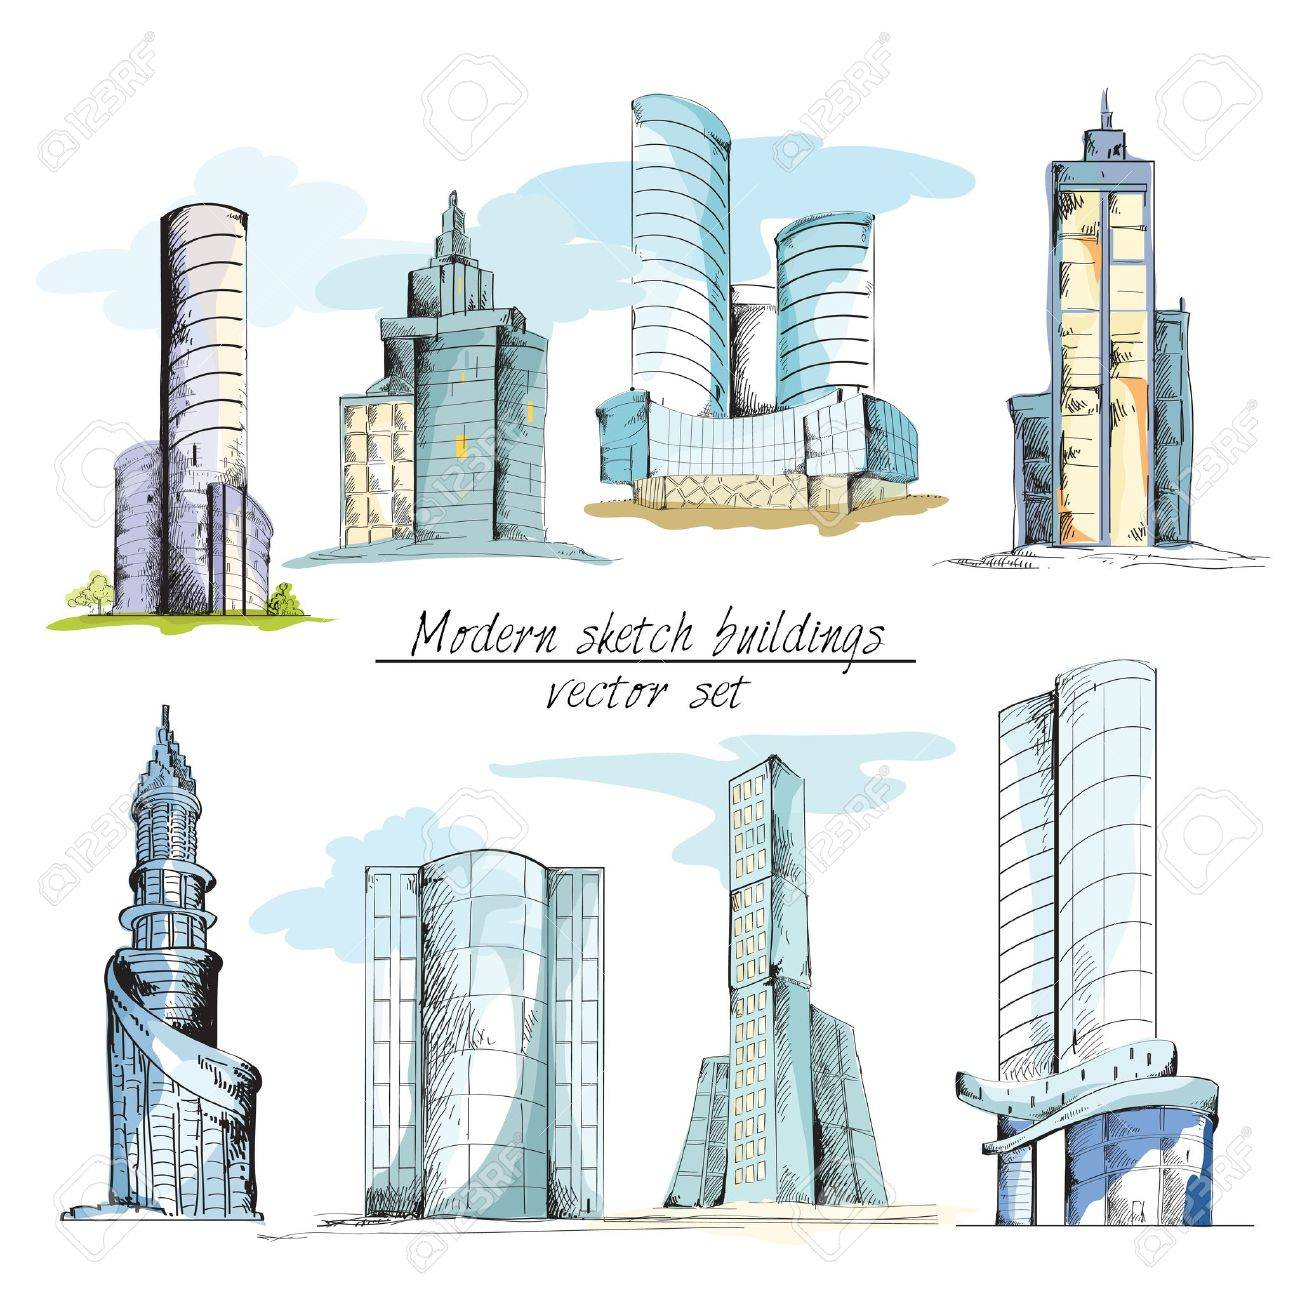 Modern Urban Sketch Building With Architectural Elements Isolated Vector Illustration Stock